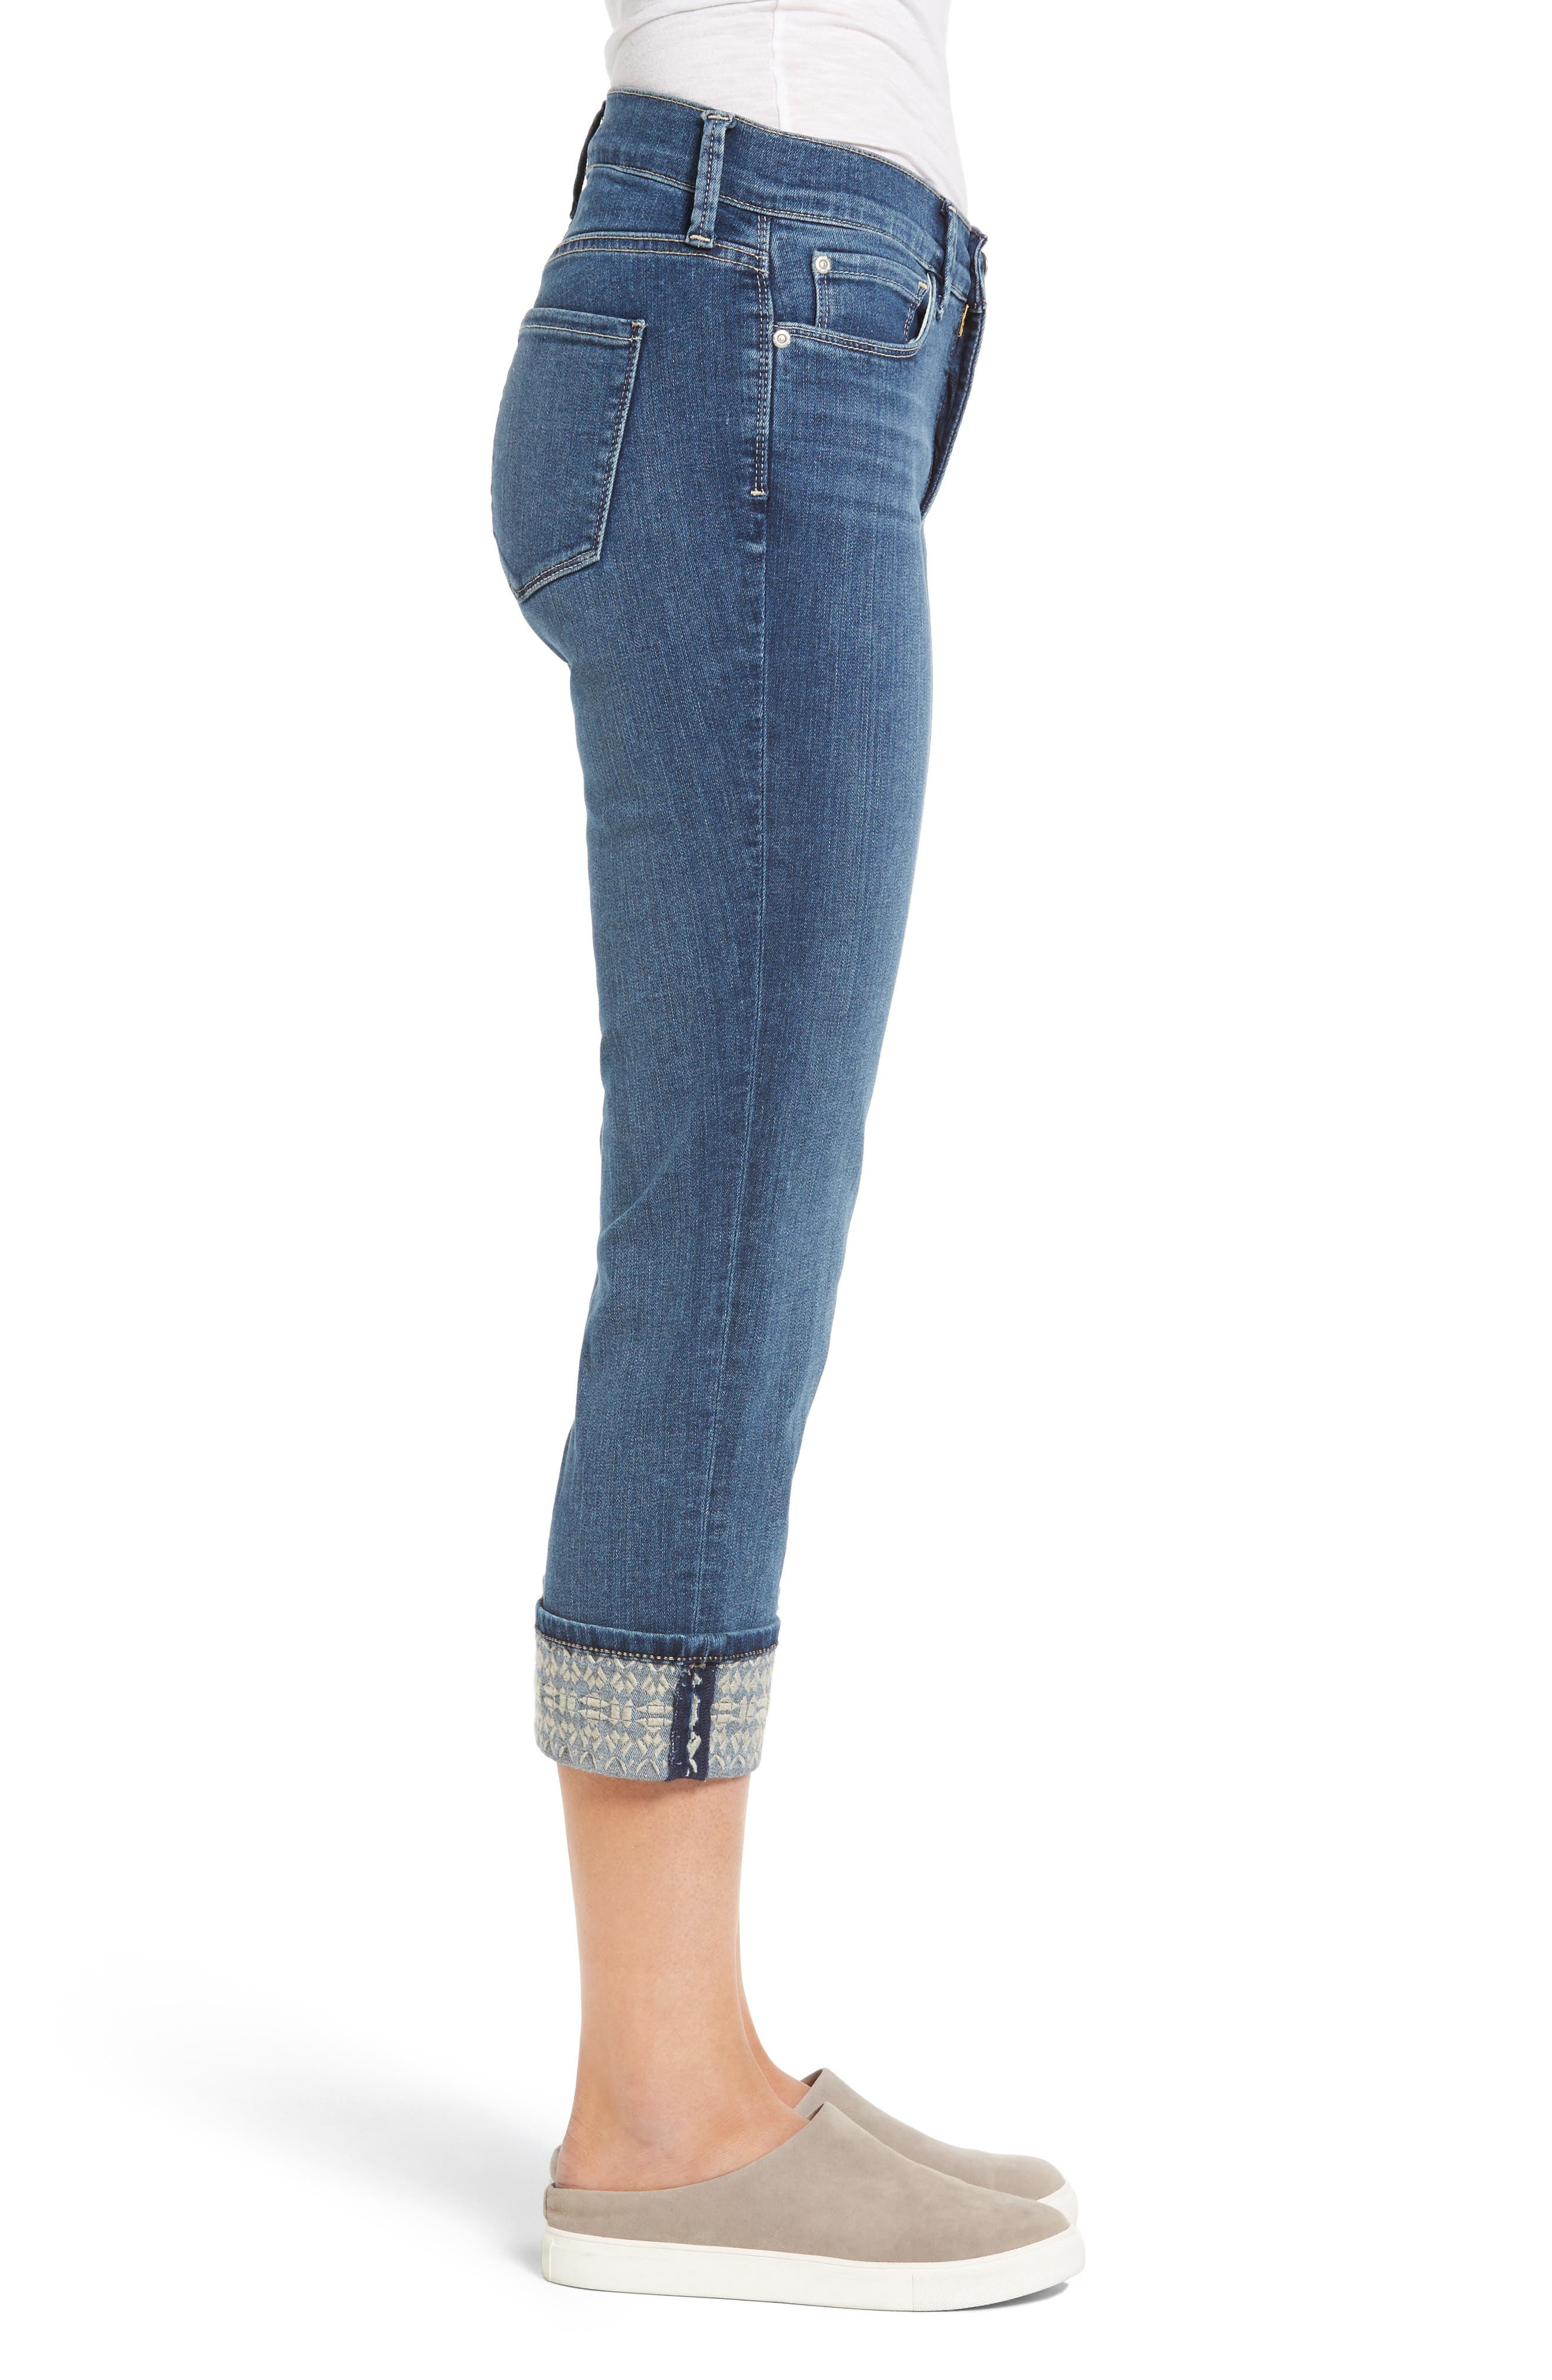 Dayla Embroidered Wide Cuff Capri Jeans,                             Alternate thumbnail 3, color,                             421